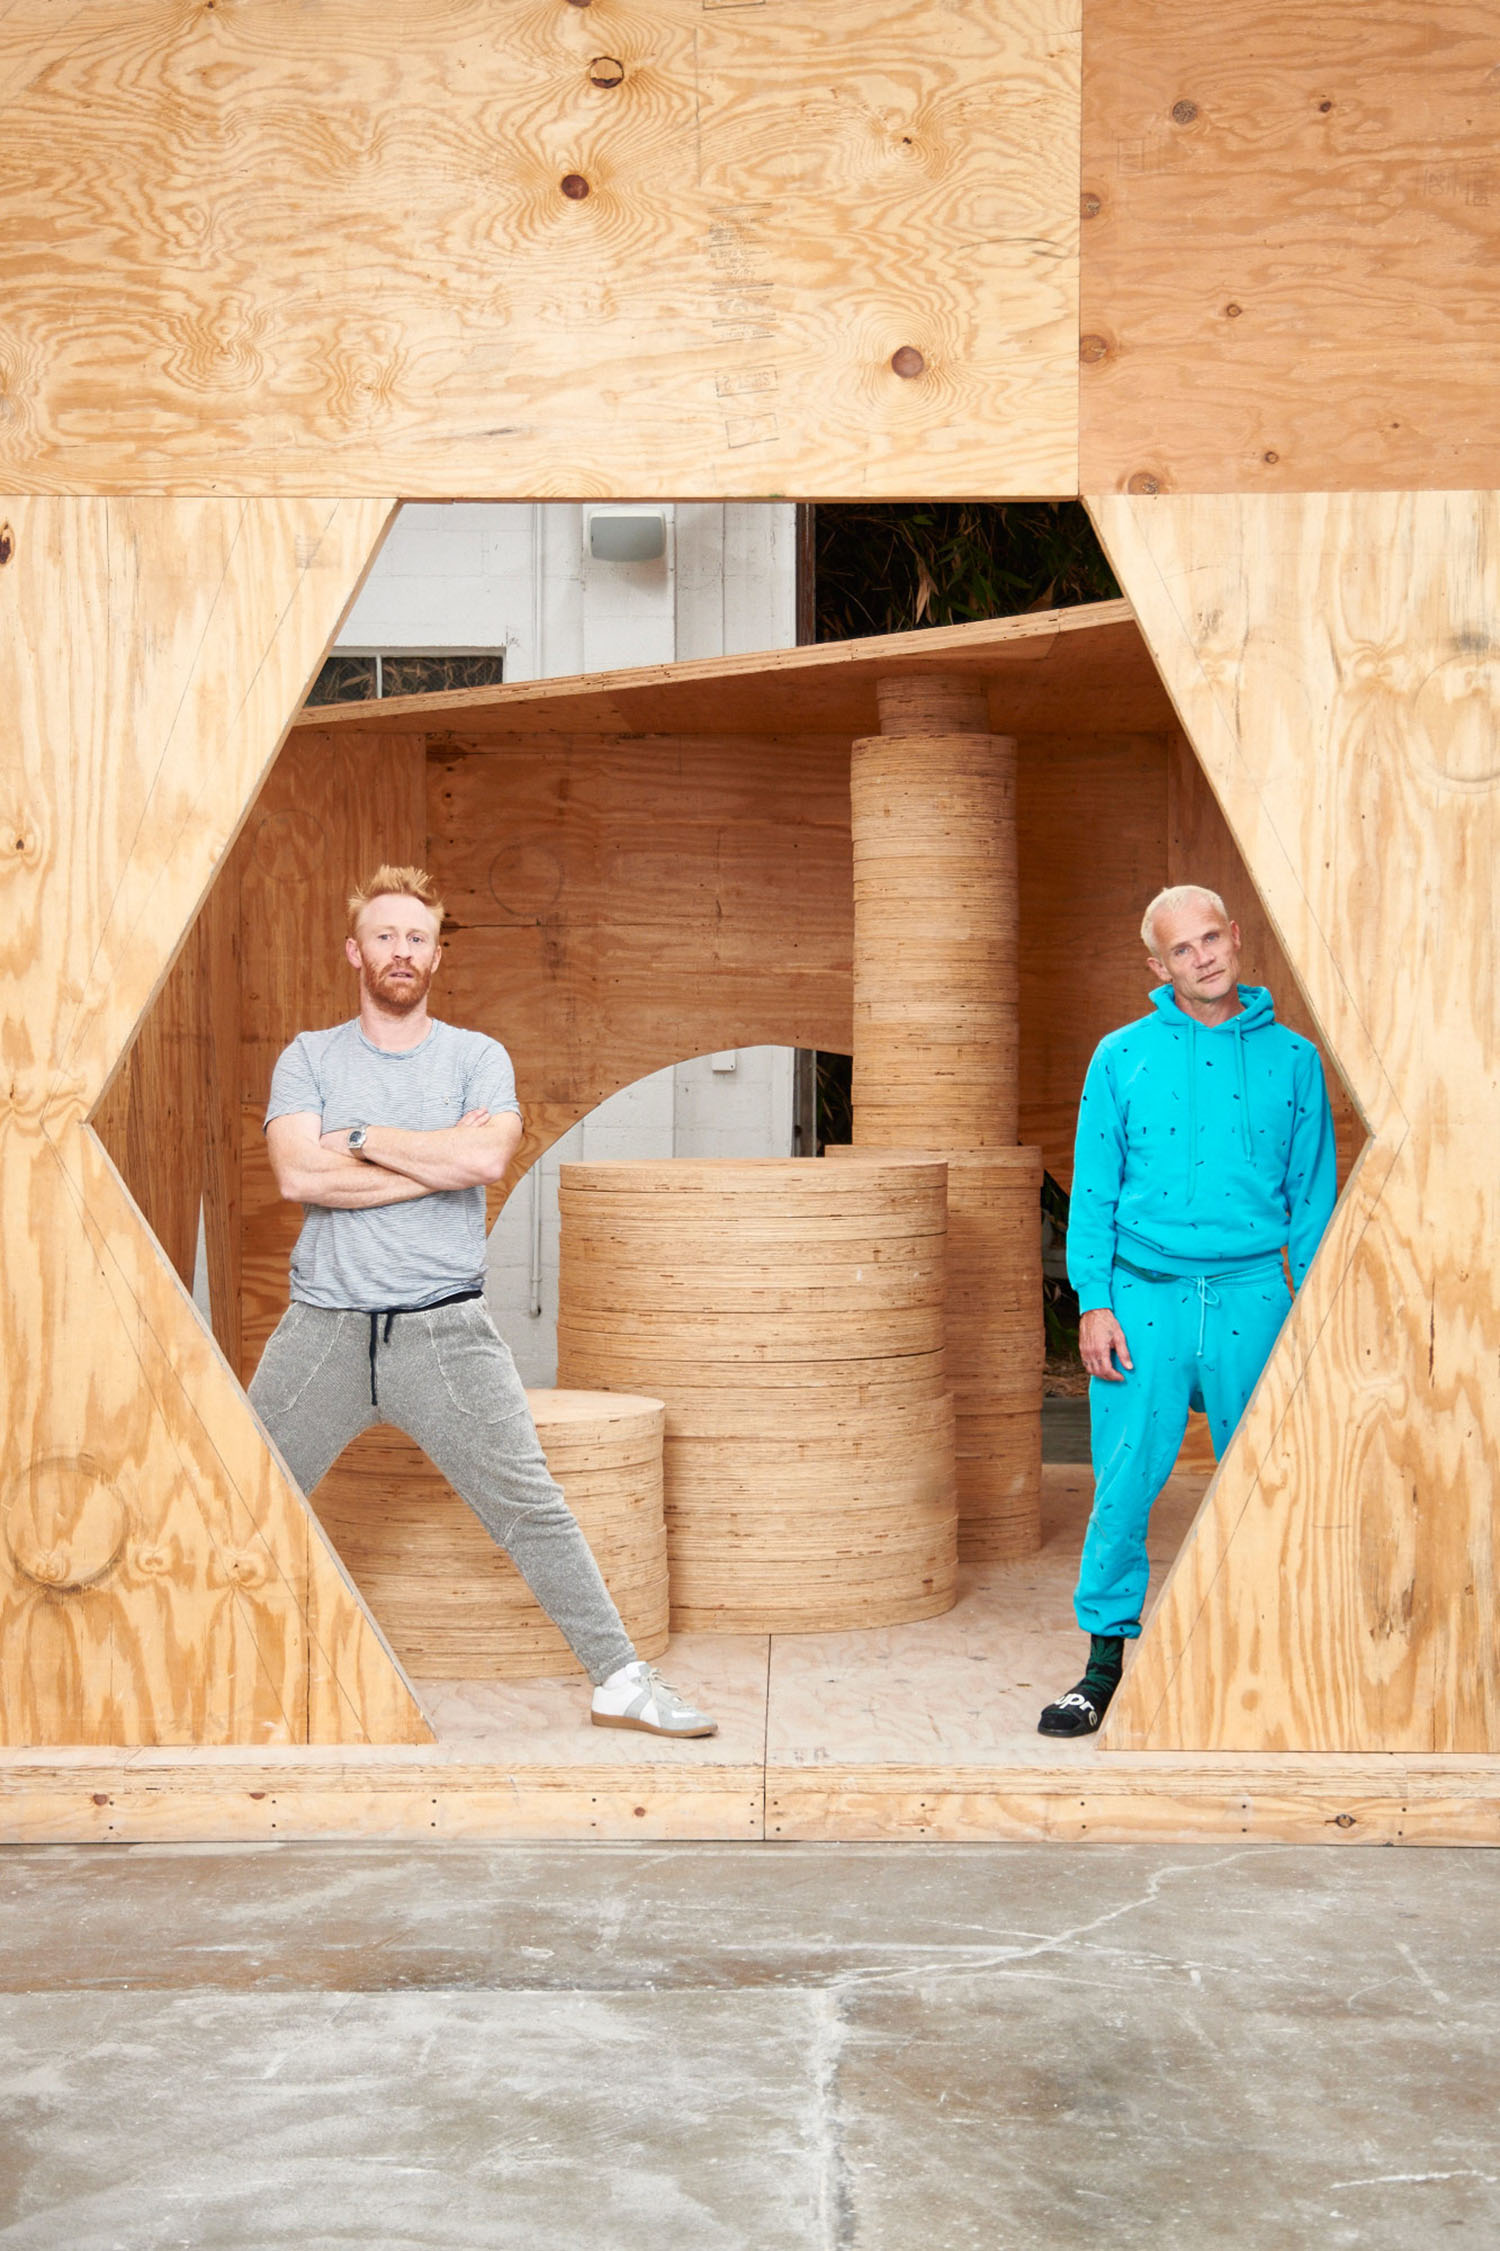 Thomas Houseago, Artist & Flea, Musician, Los Angeles, California, 2014